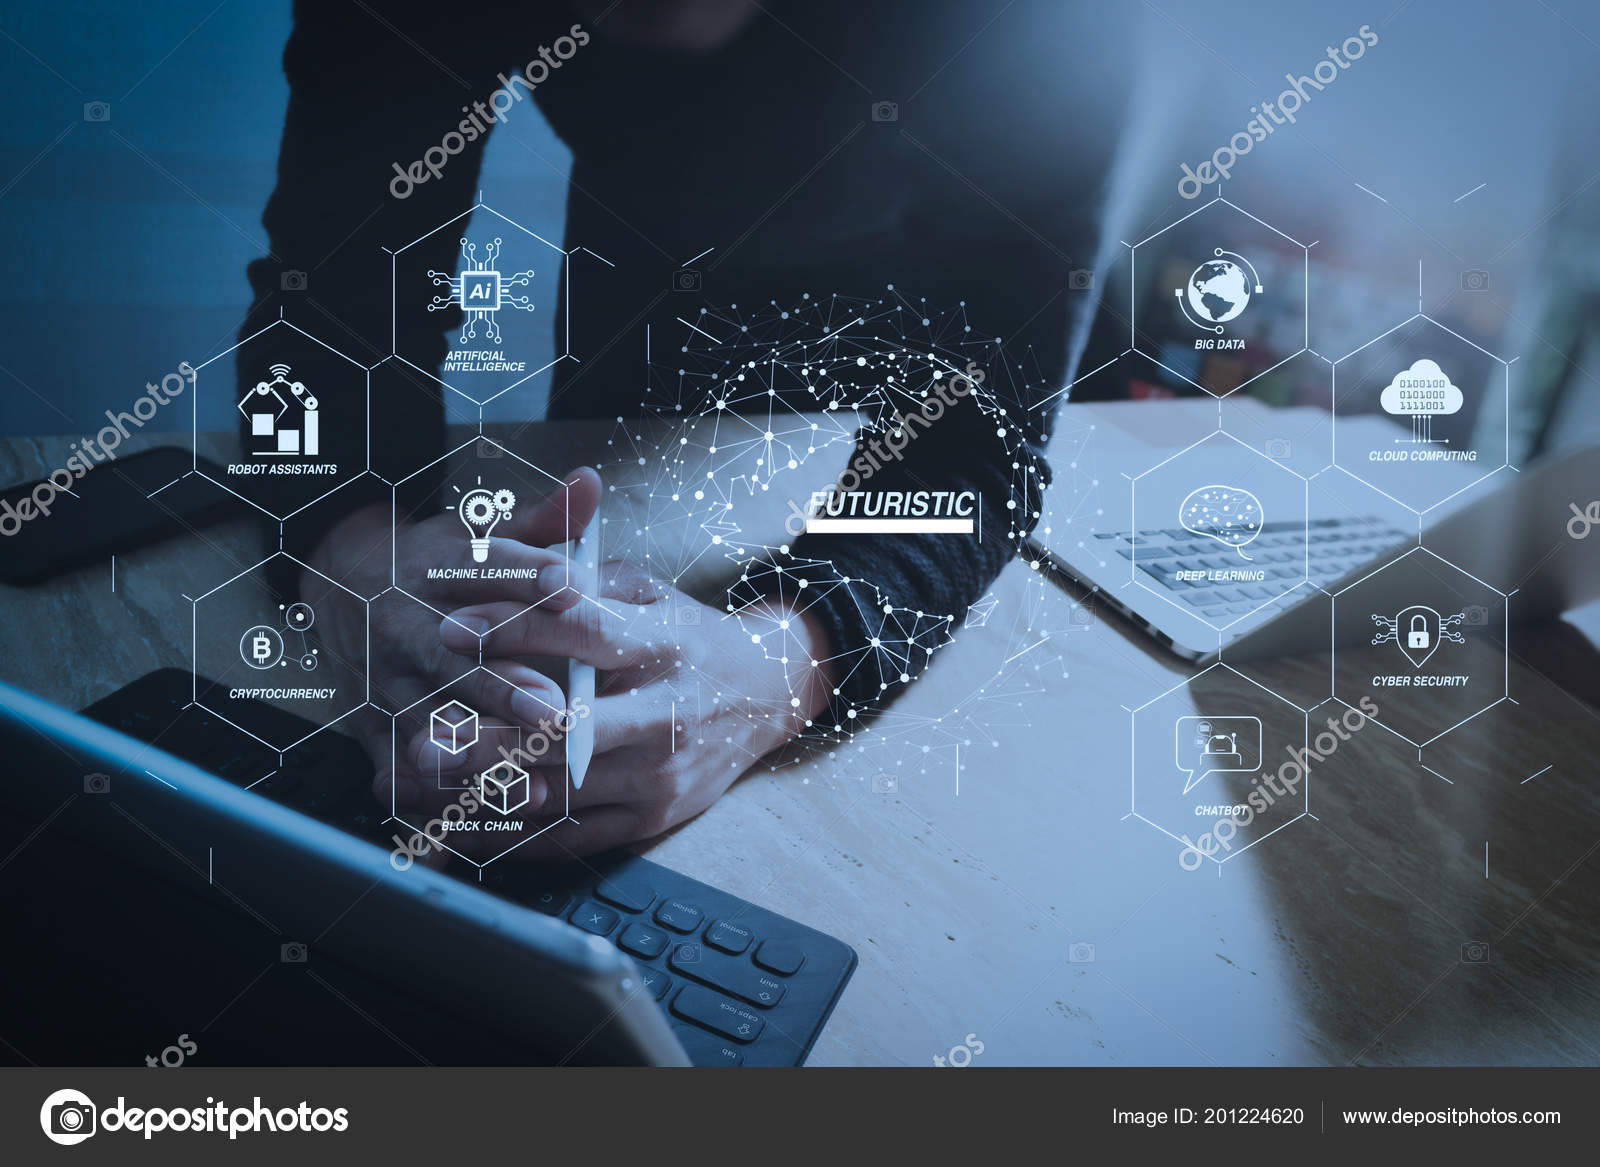 hight resolution of futuristic industry business virtual diagram robot assistant cloud big data stock photo